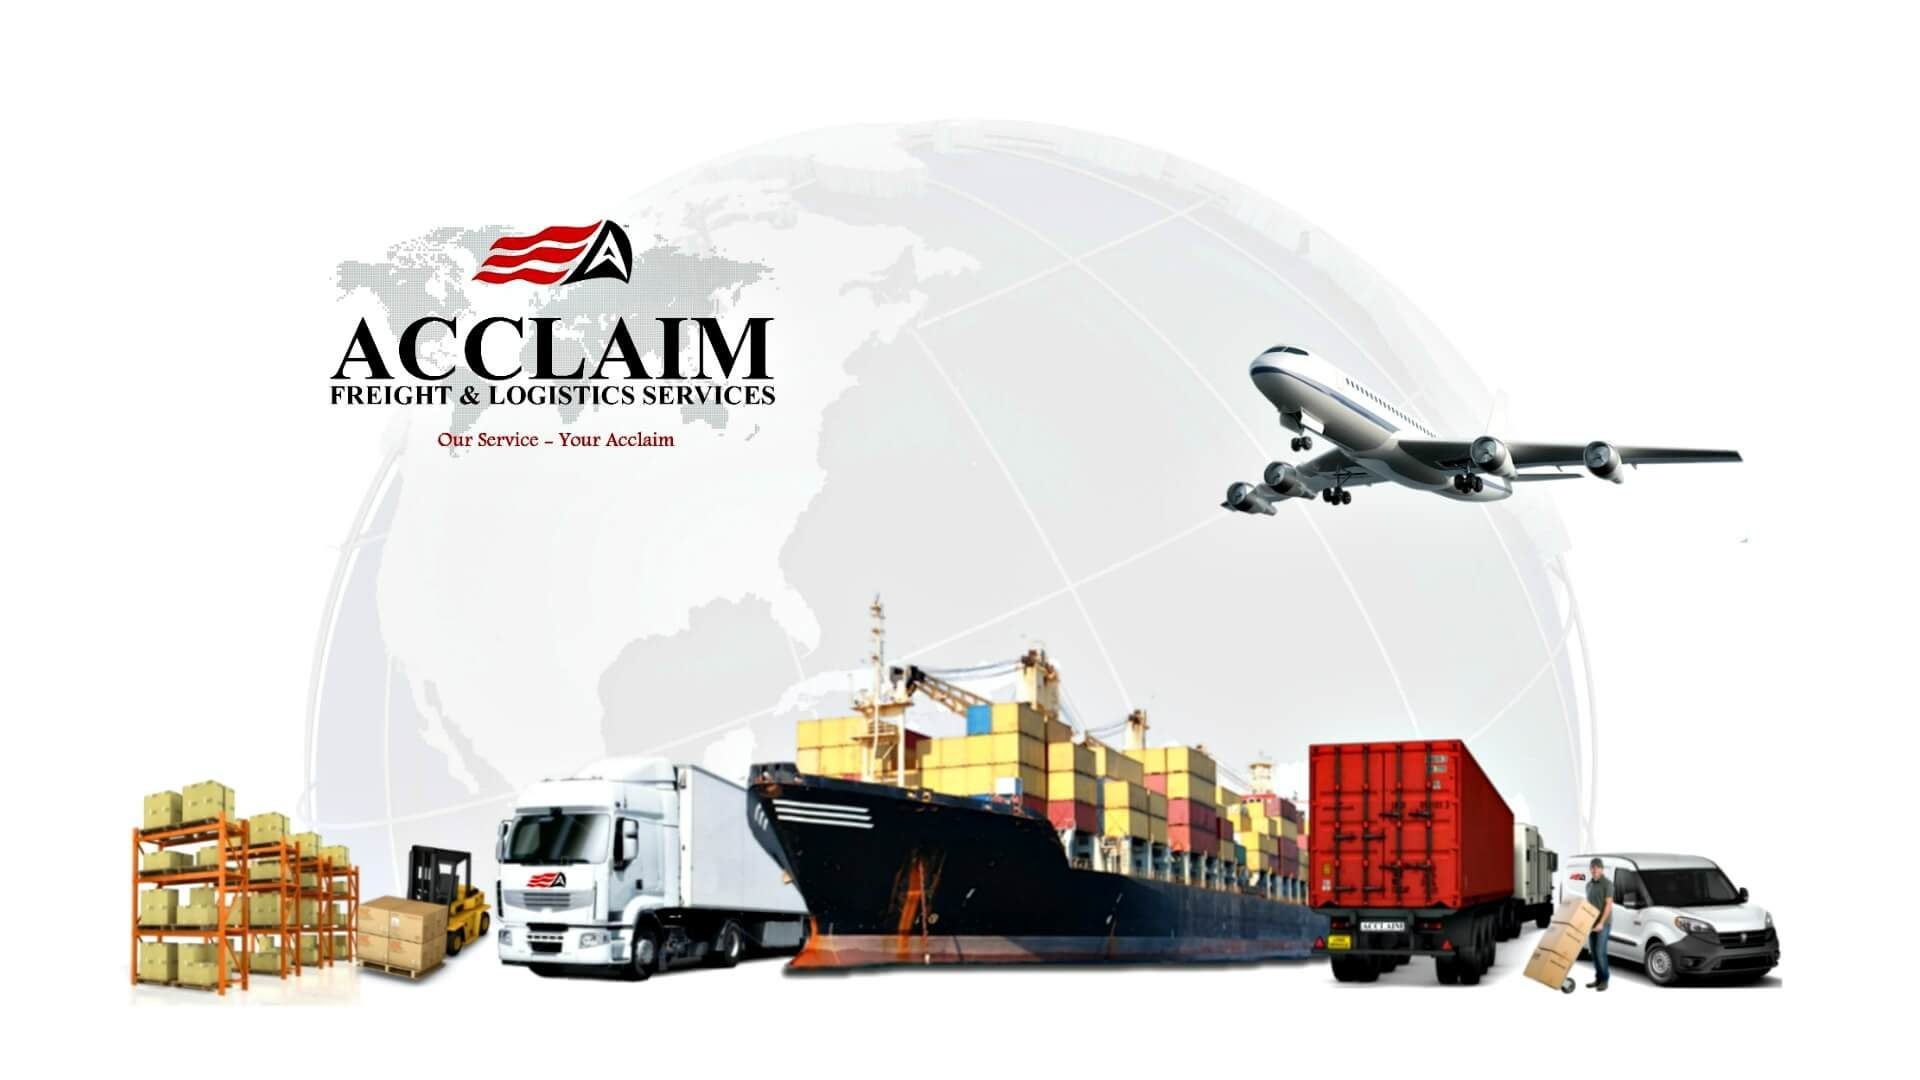 Acclaim Freight & Logistics Services Header Image